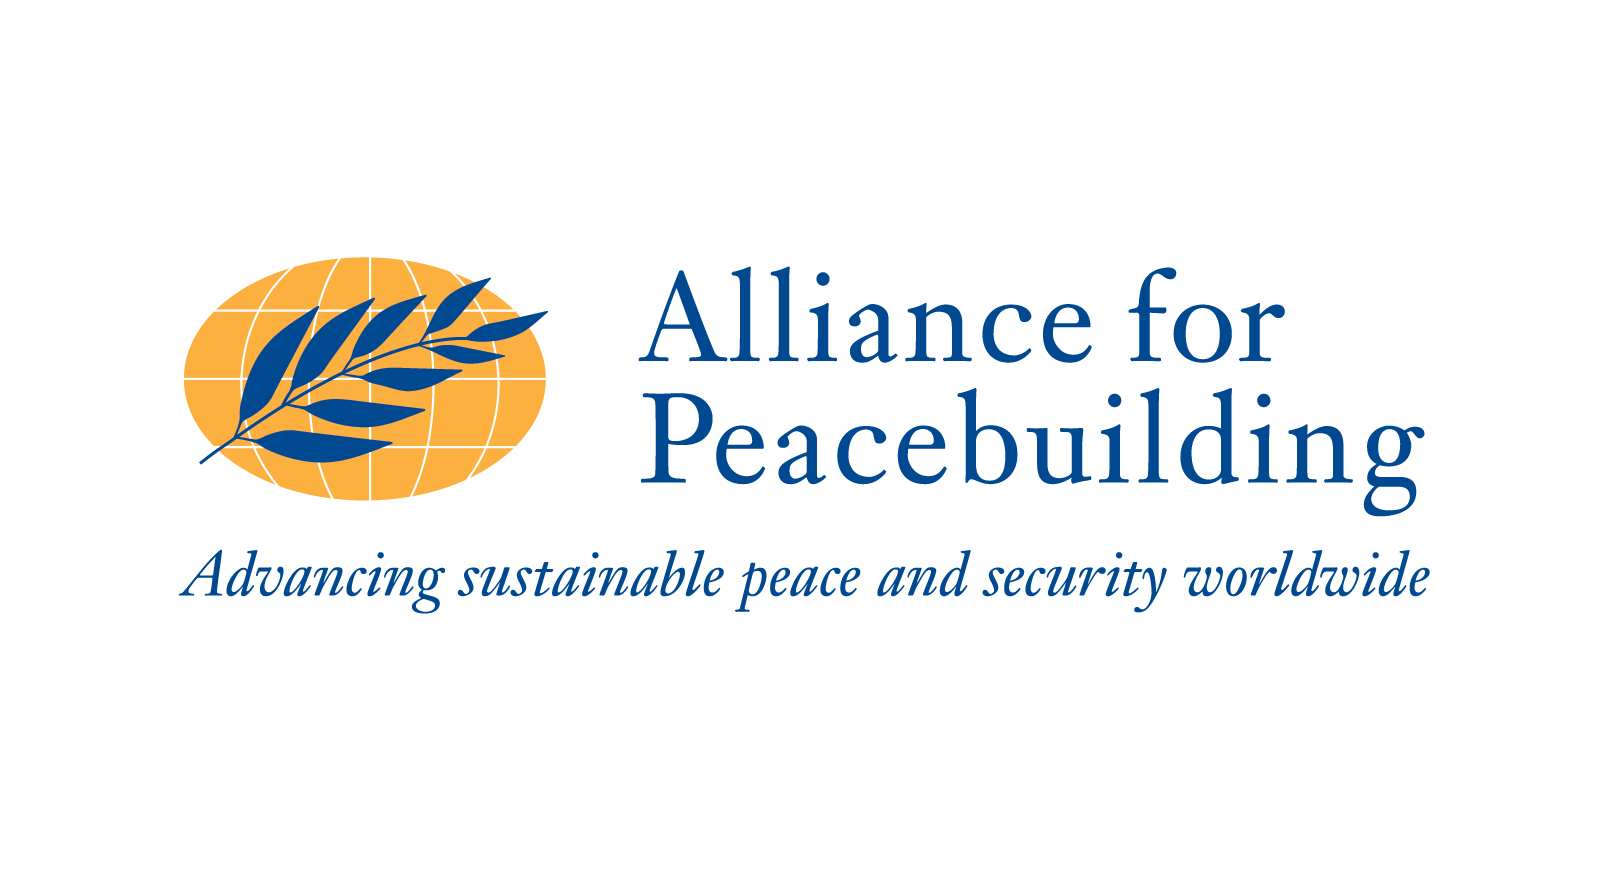 Alliance for Peacebuilding logo